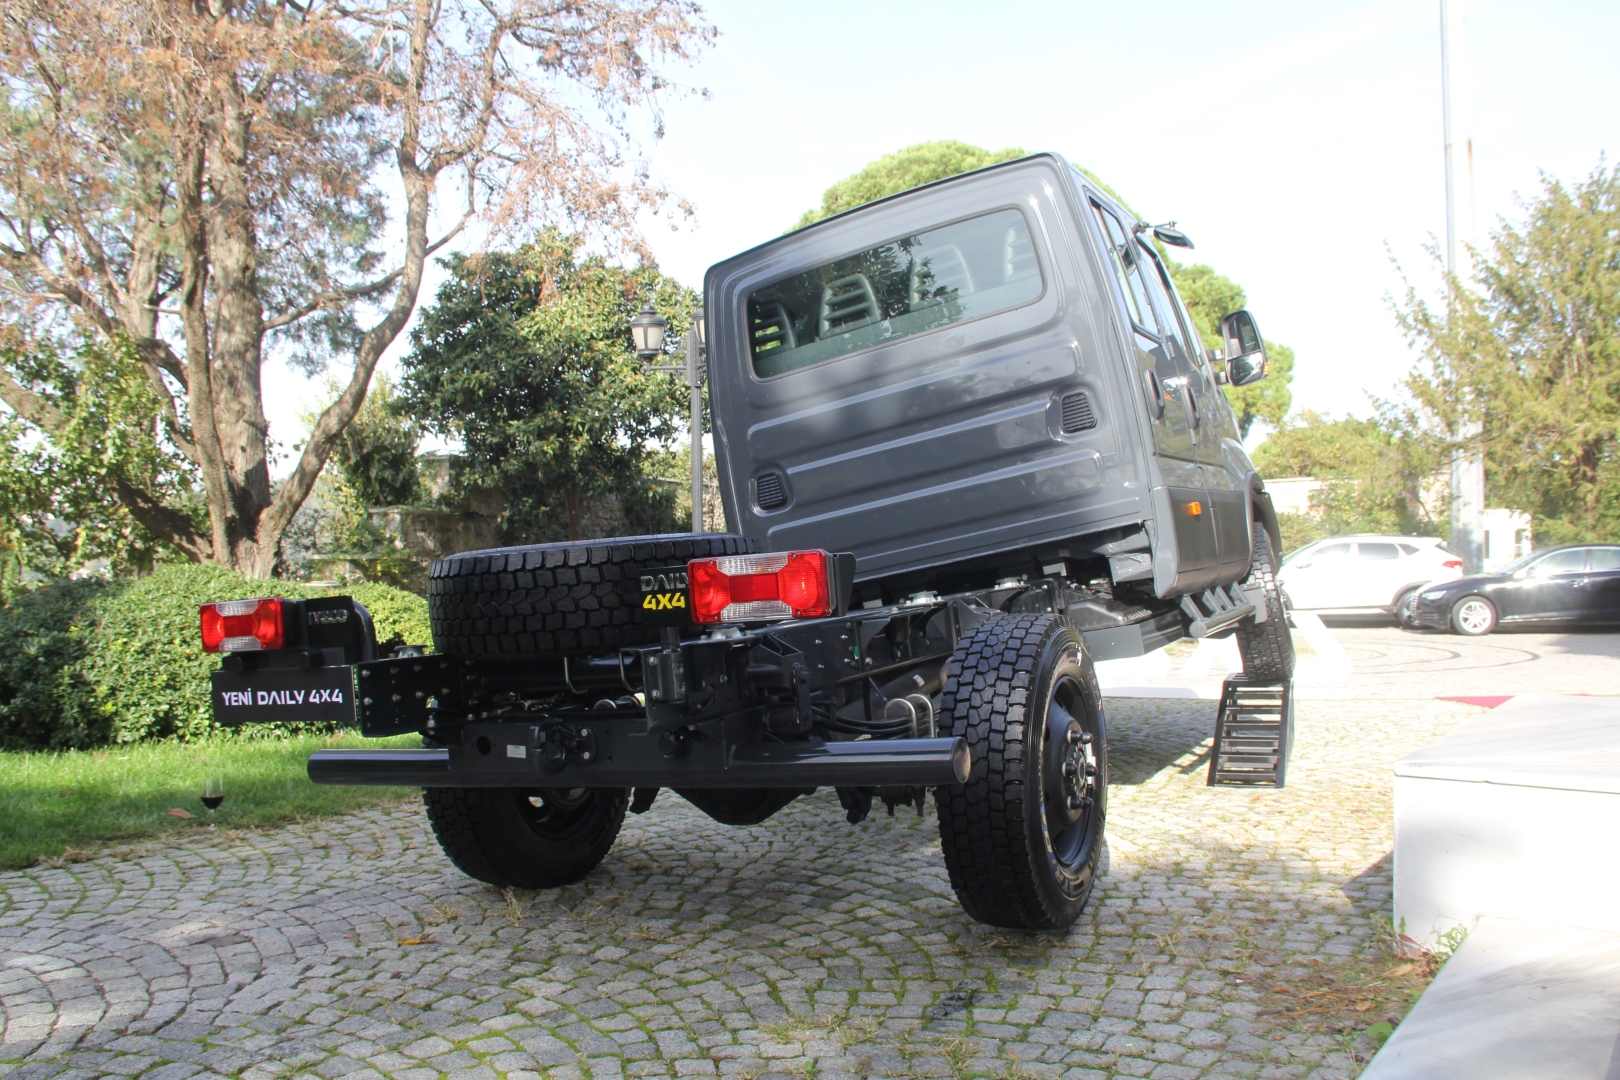 iveco-daily-4x4-(8).jpg